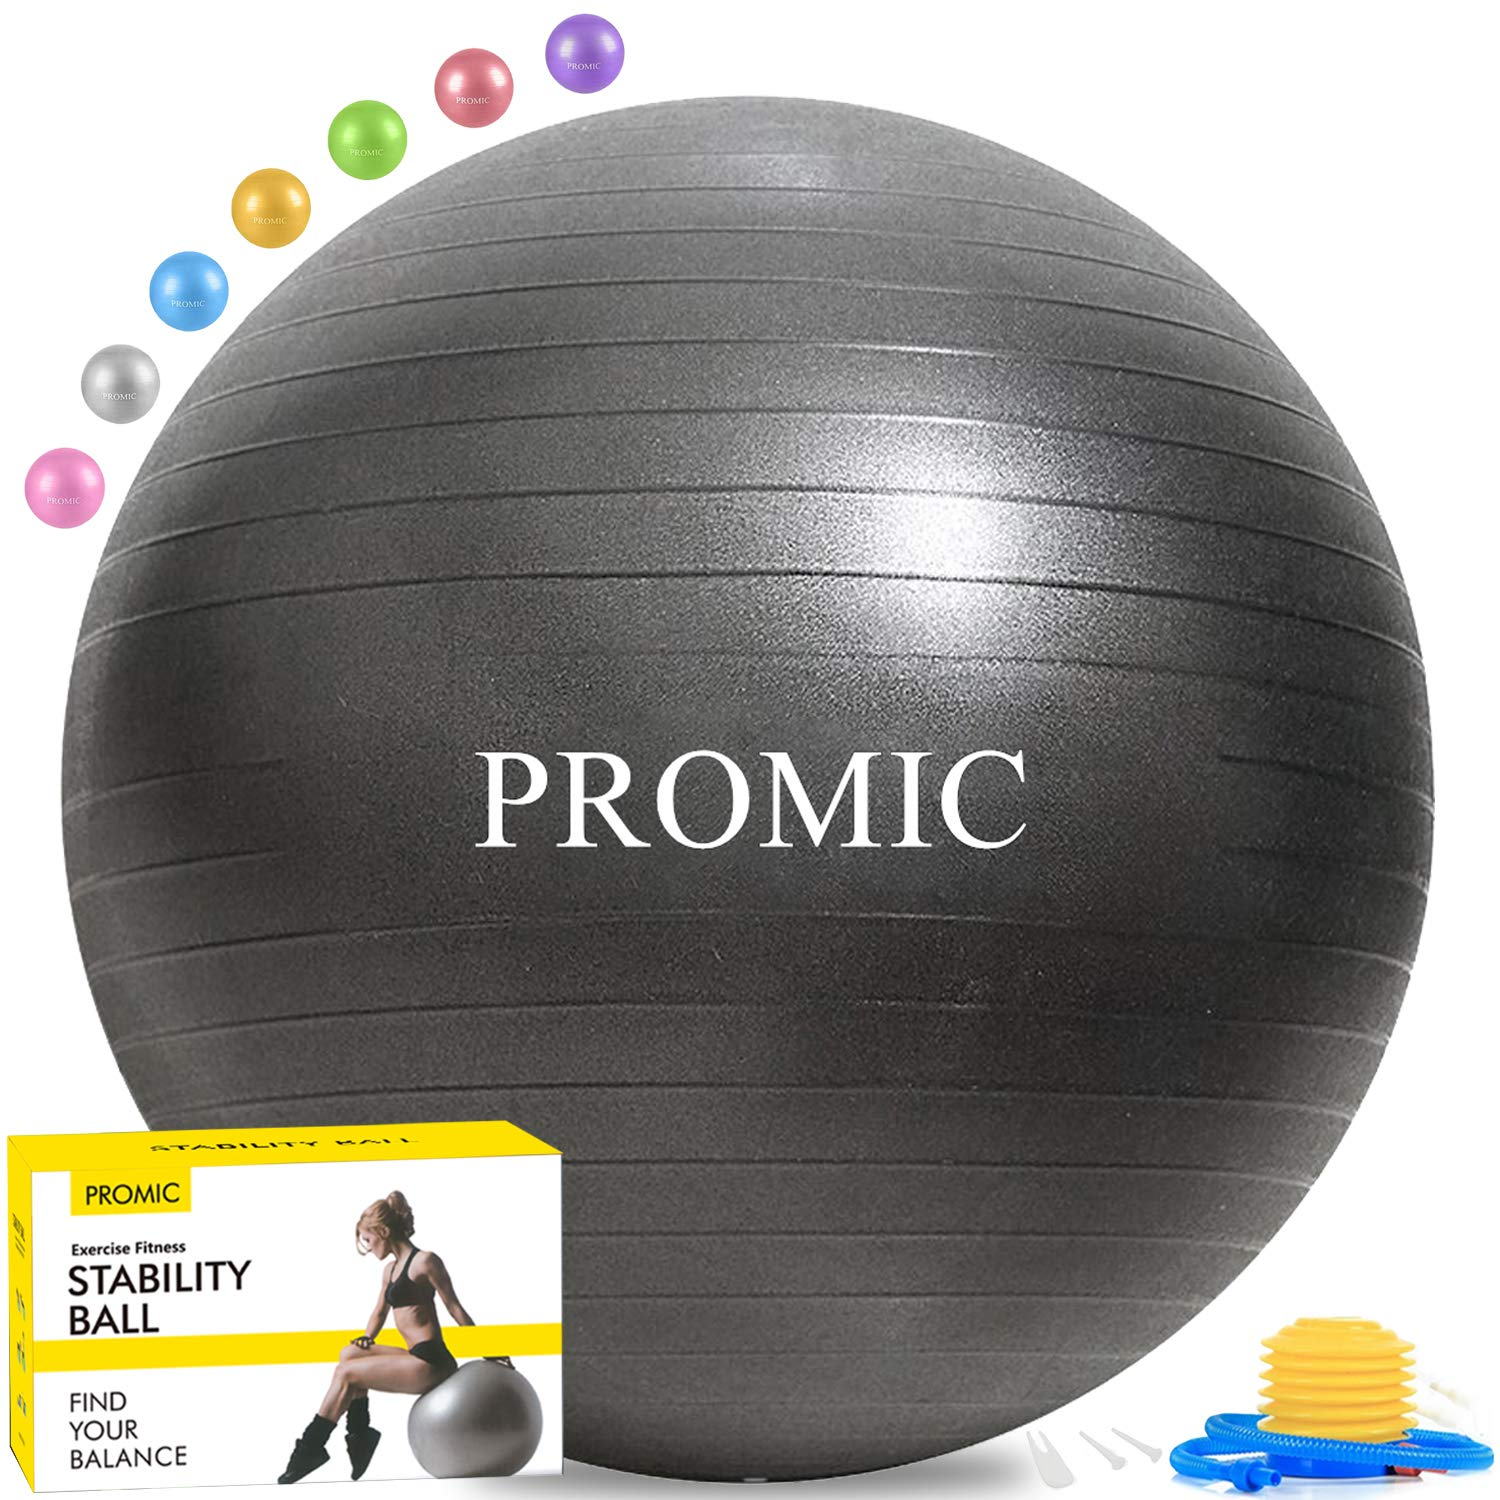 PROMIC Exercise Ball (45-85cm) with Quick Foot Pump, Professional Grade Anti Burst & Slip Resistant Stability Balance…